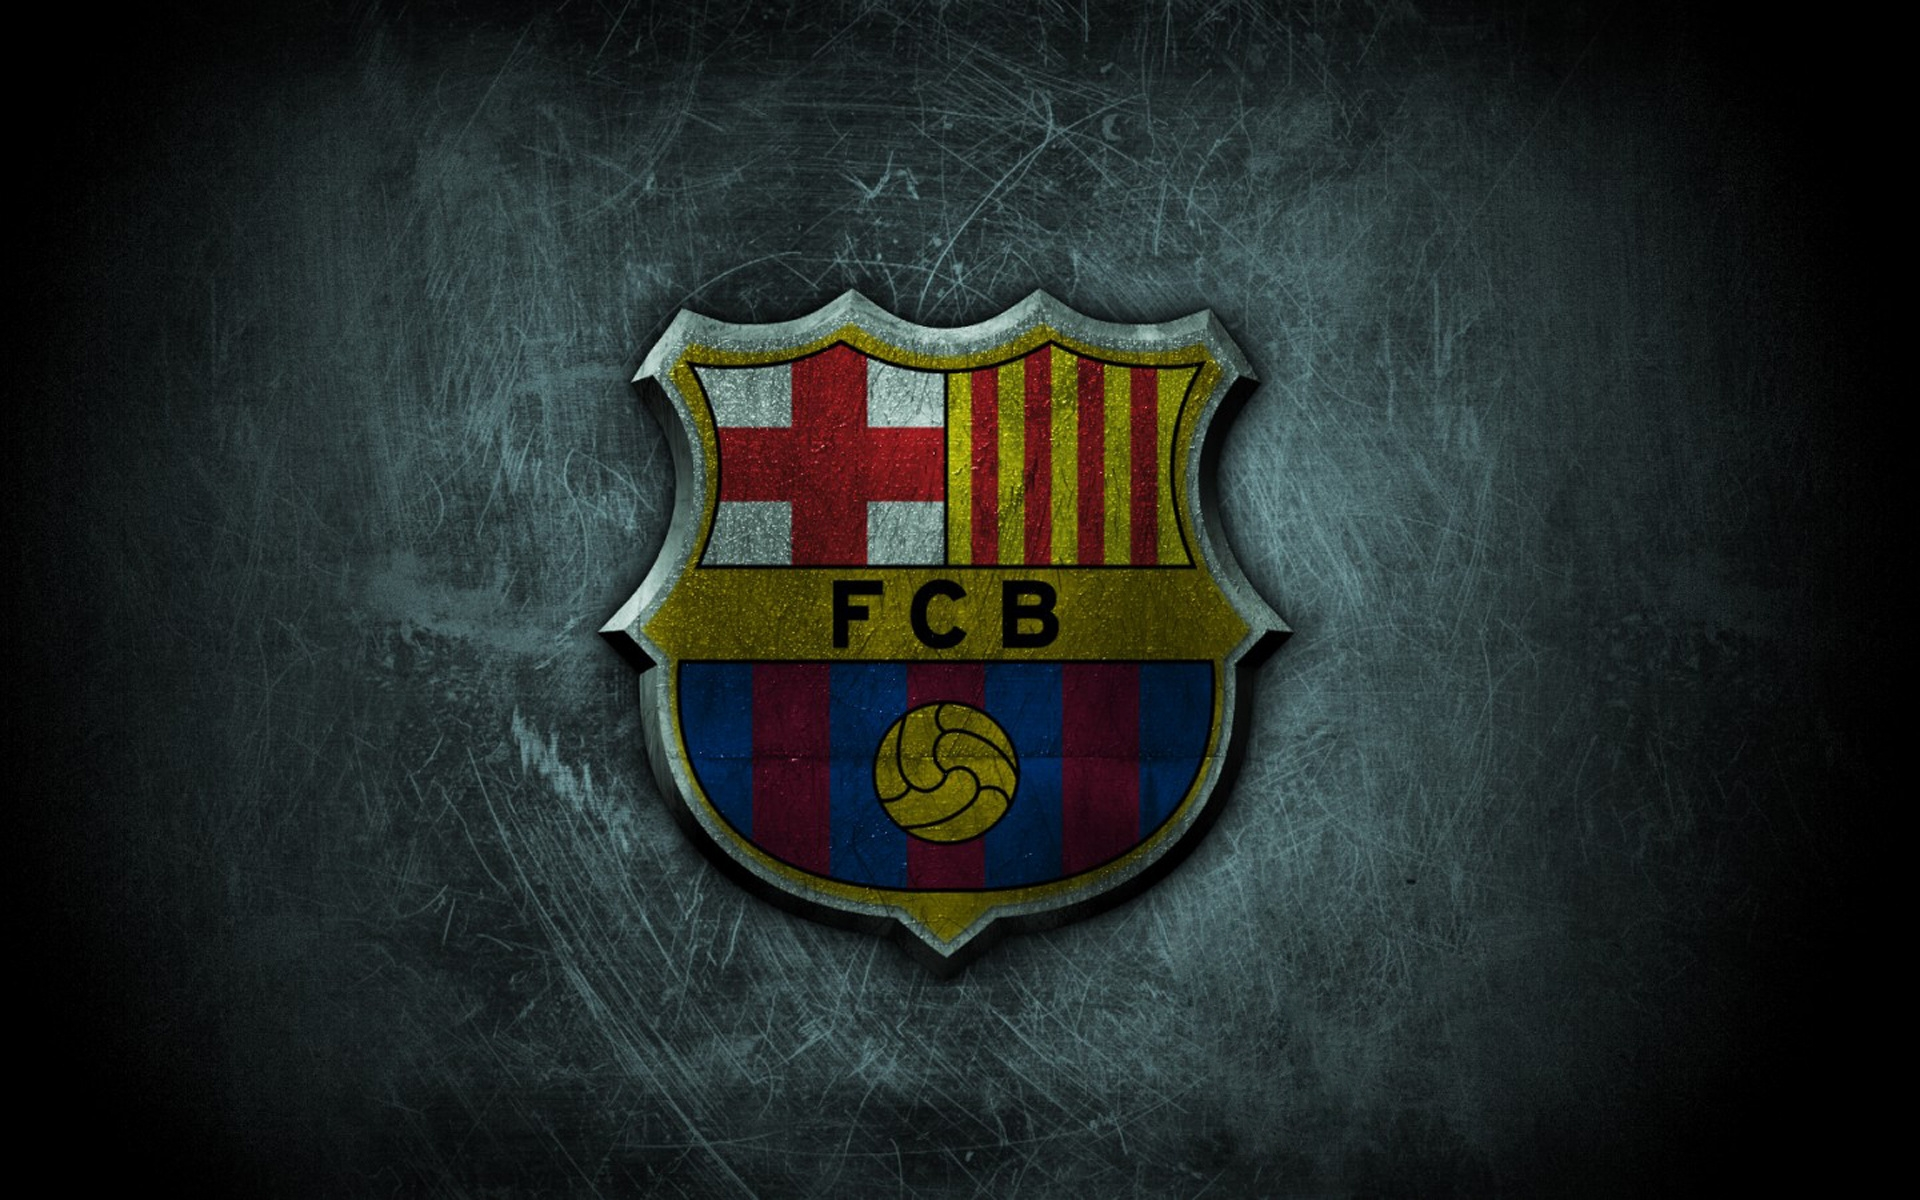 wallpaper hd del Escudo del f.c Barcelona